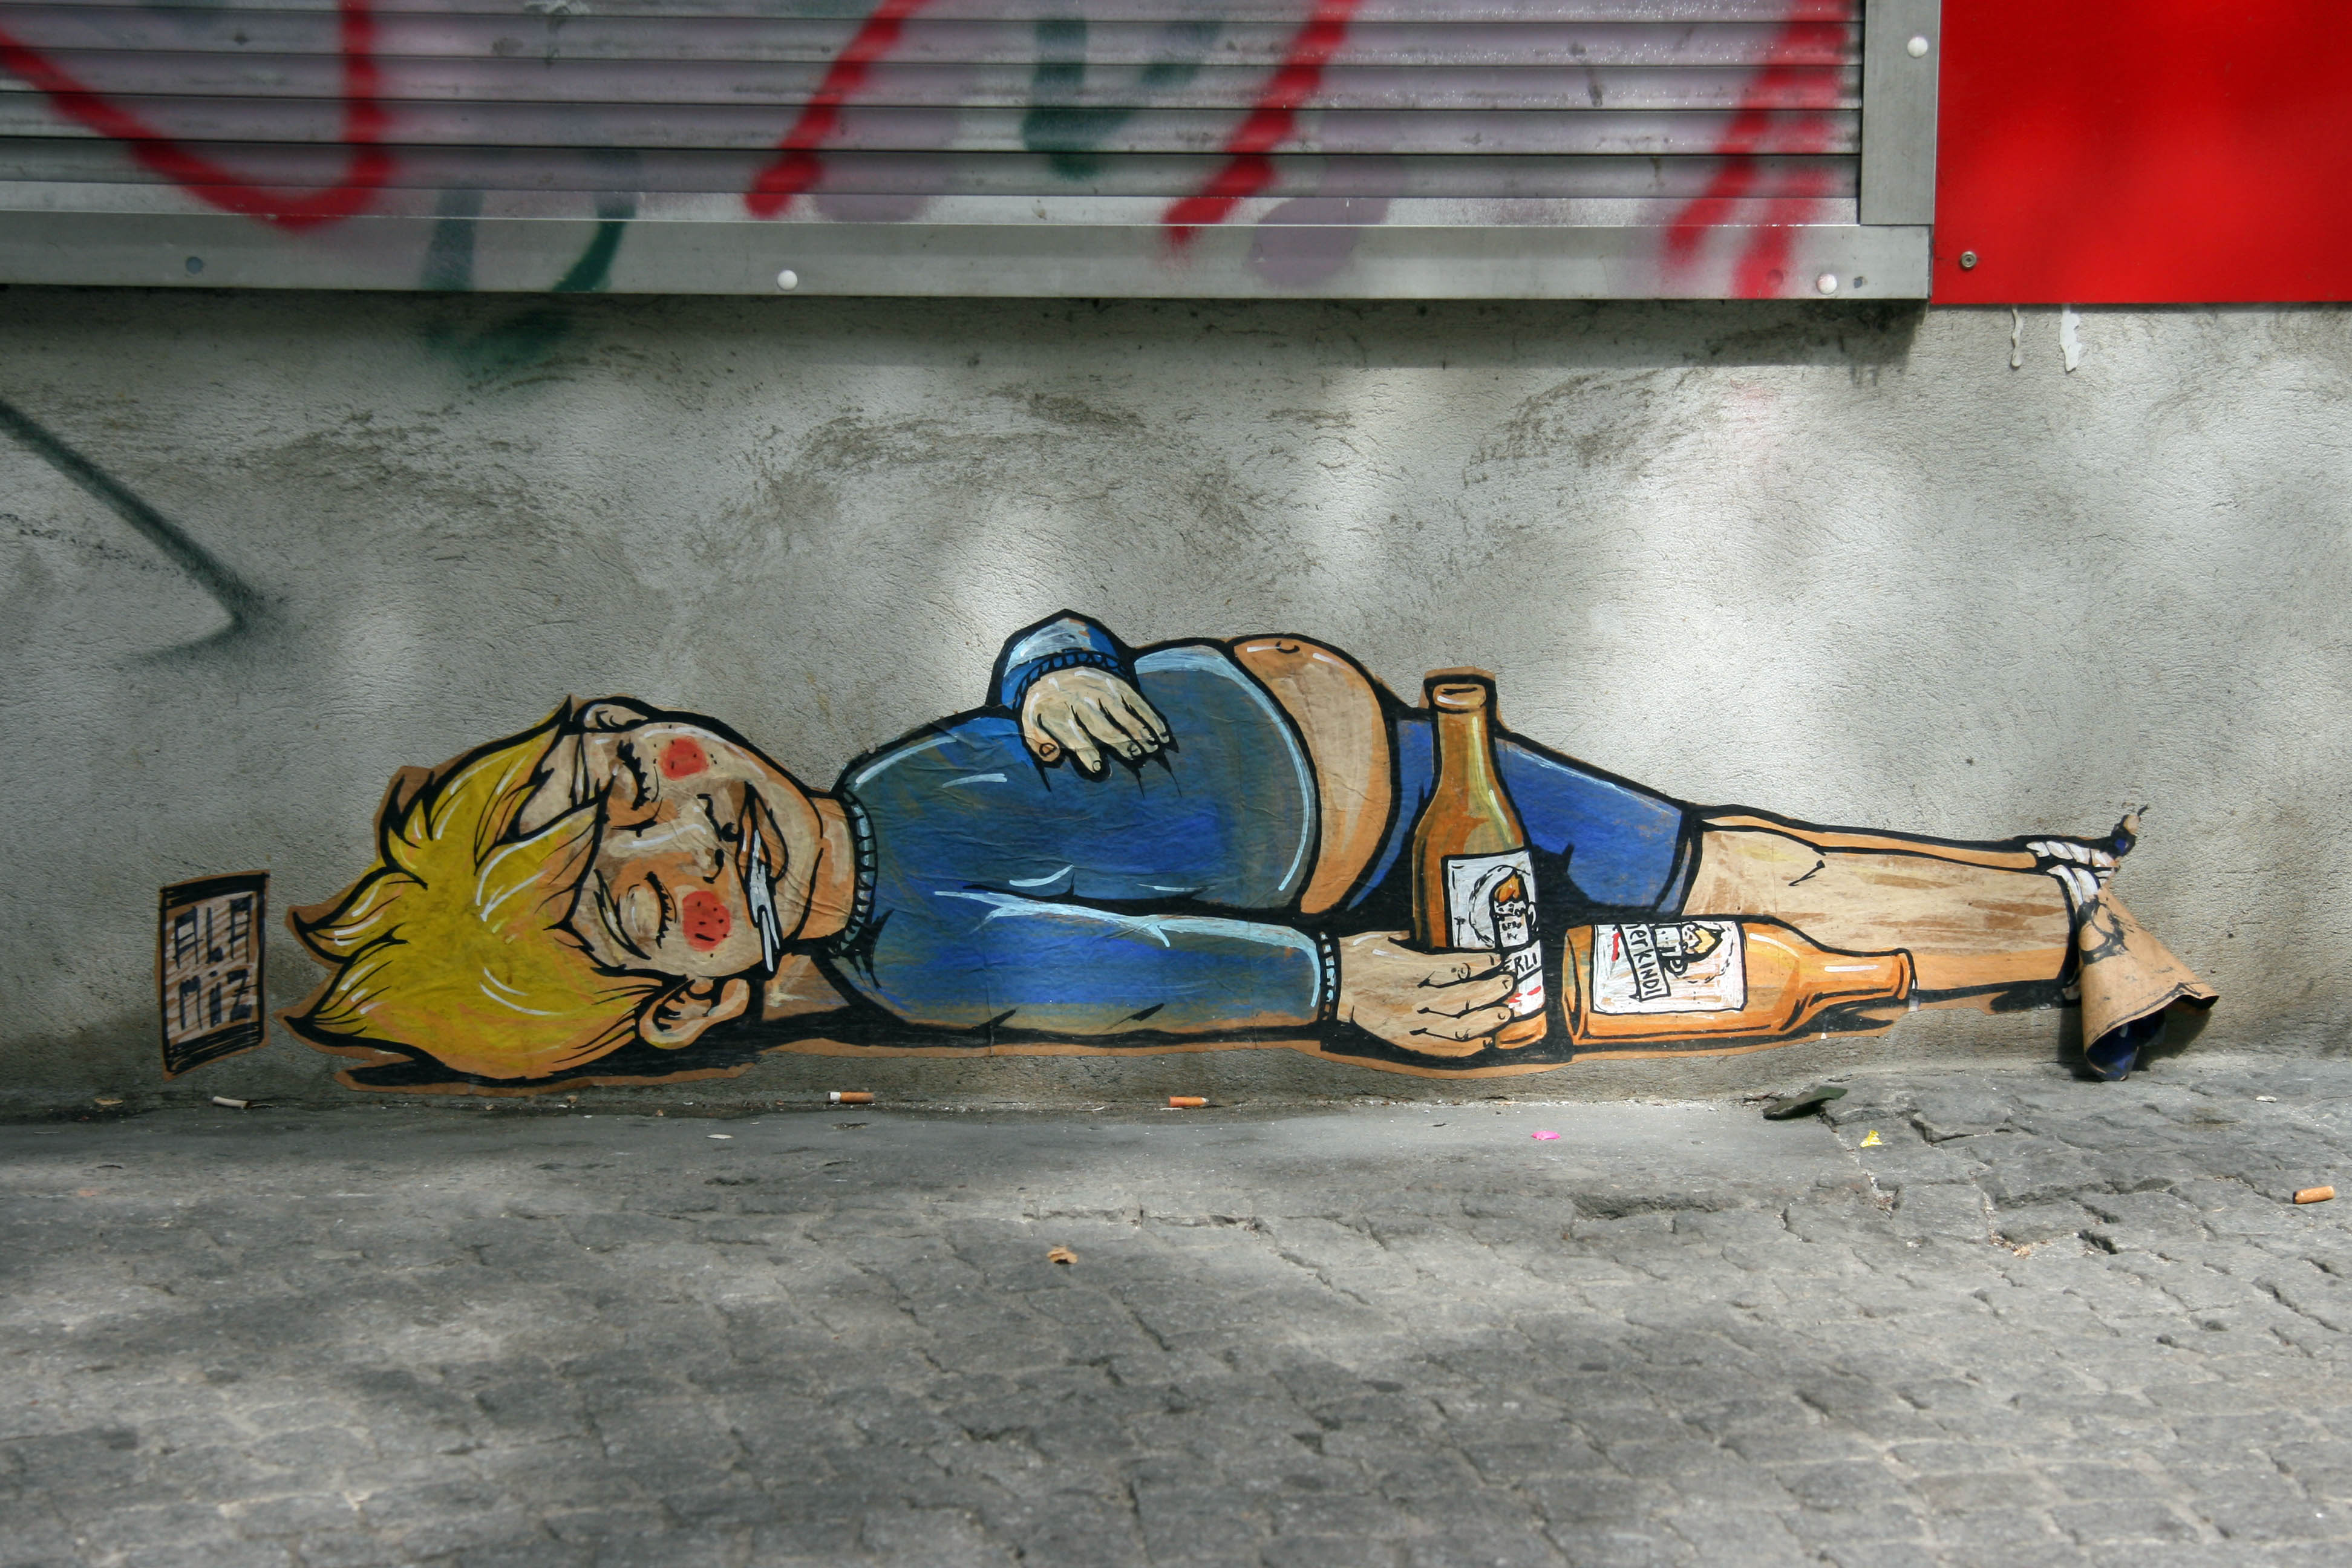 Berliner Kindl: Street Art by ALANIZ in Berlin